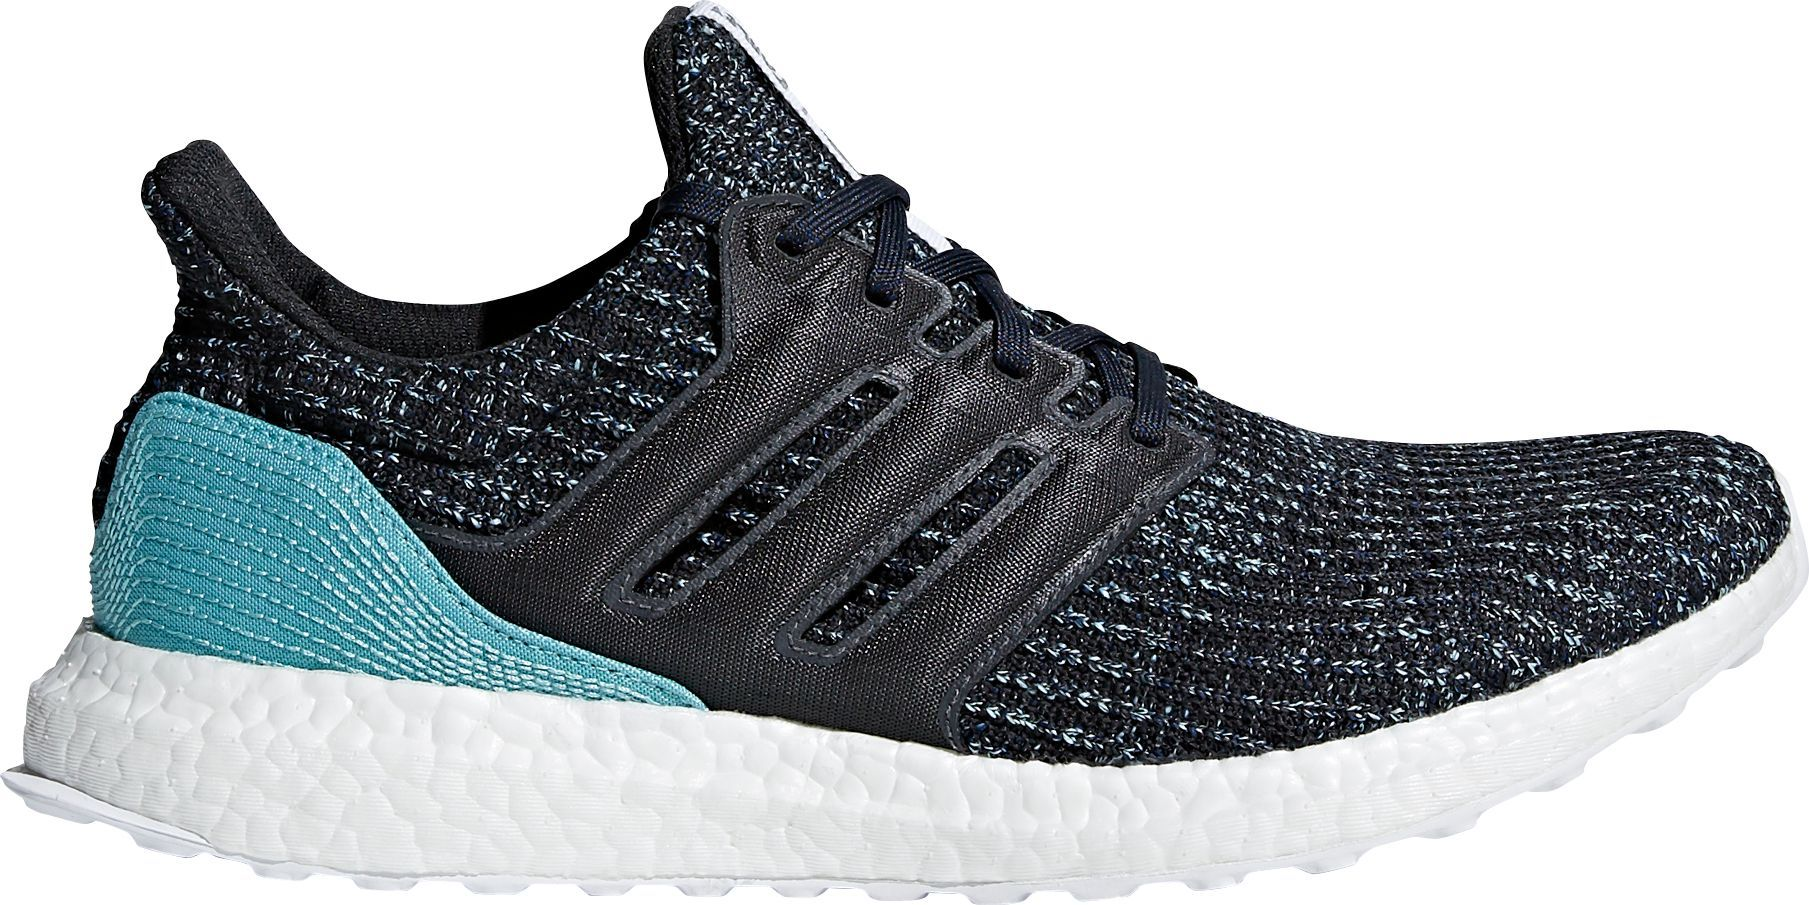 03c1b251f12 adidas Men s Ultra Boost Parley Running Shoes